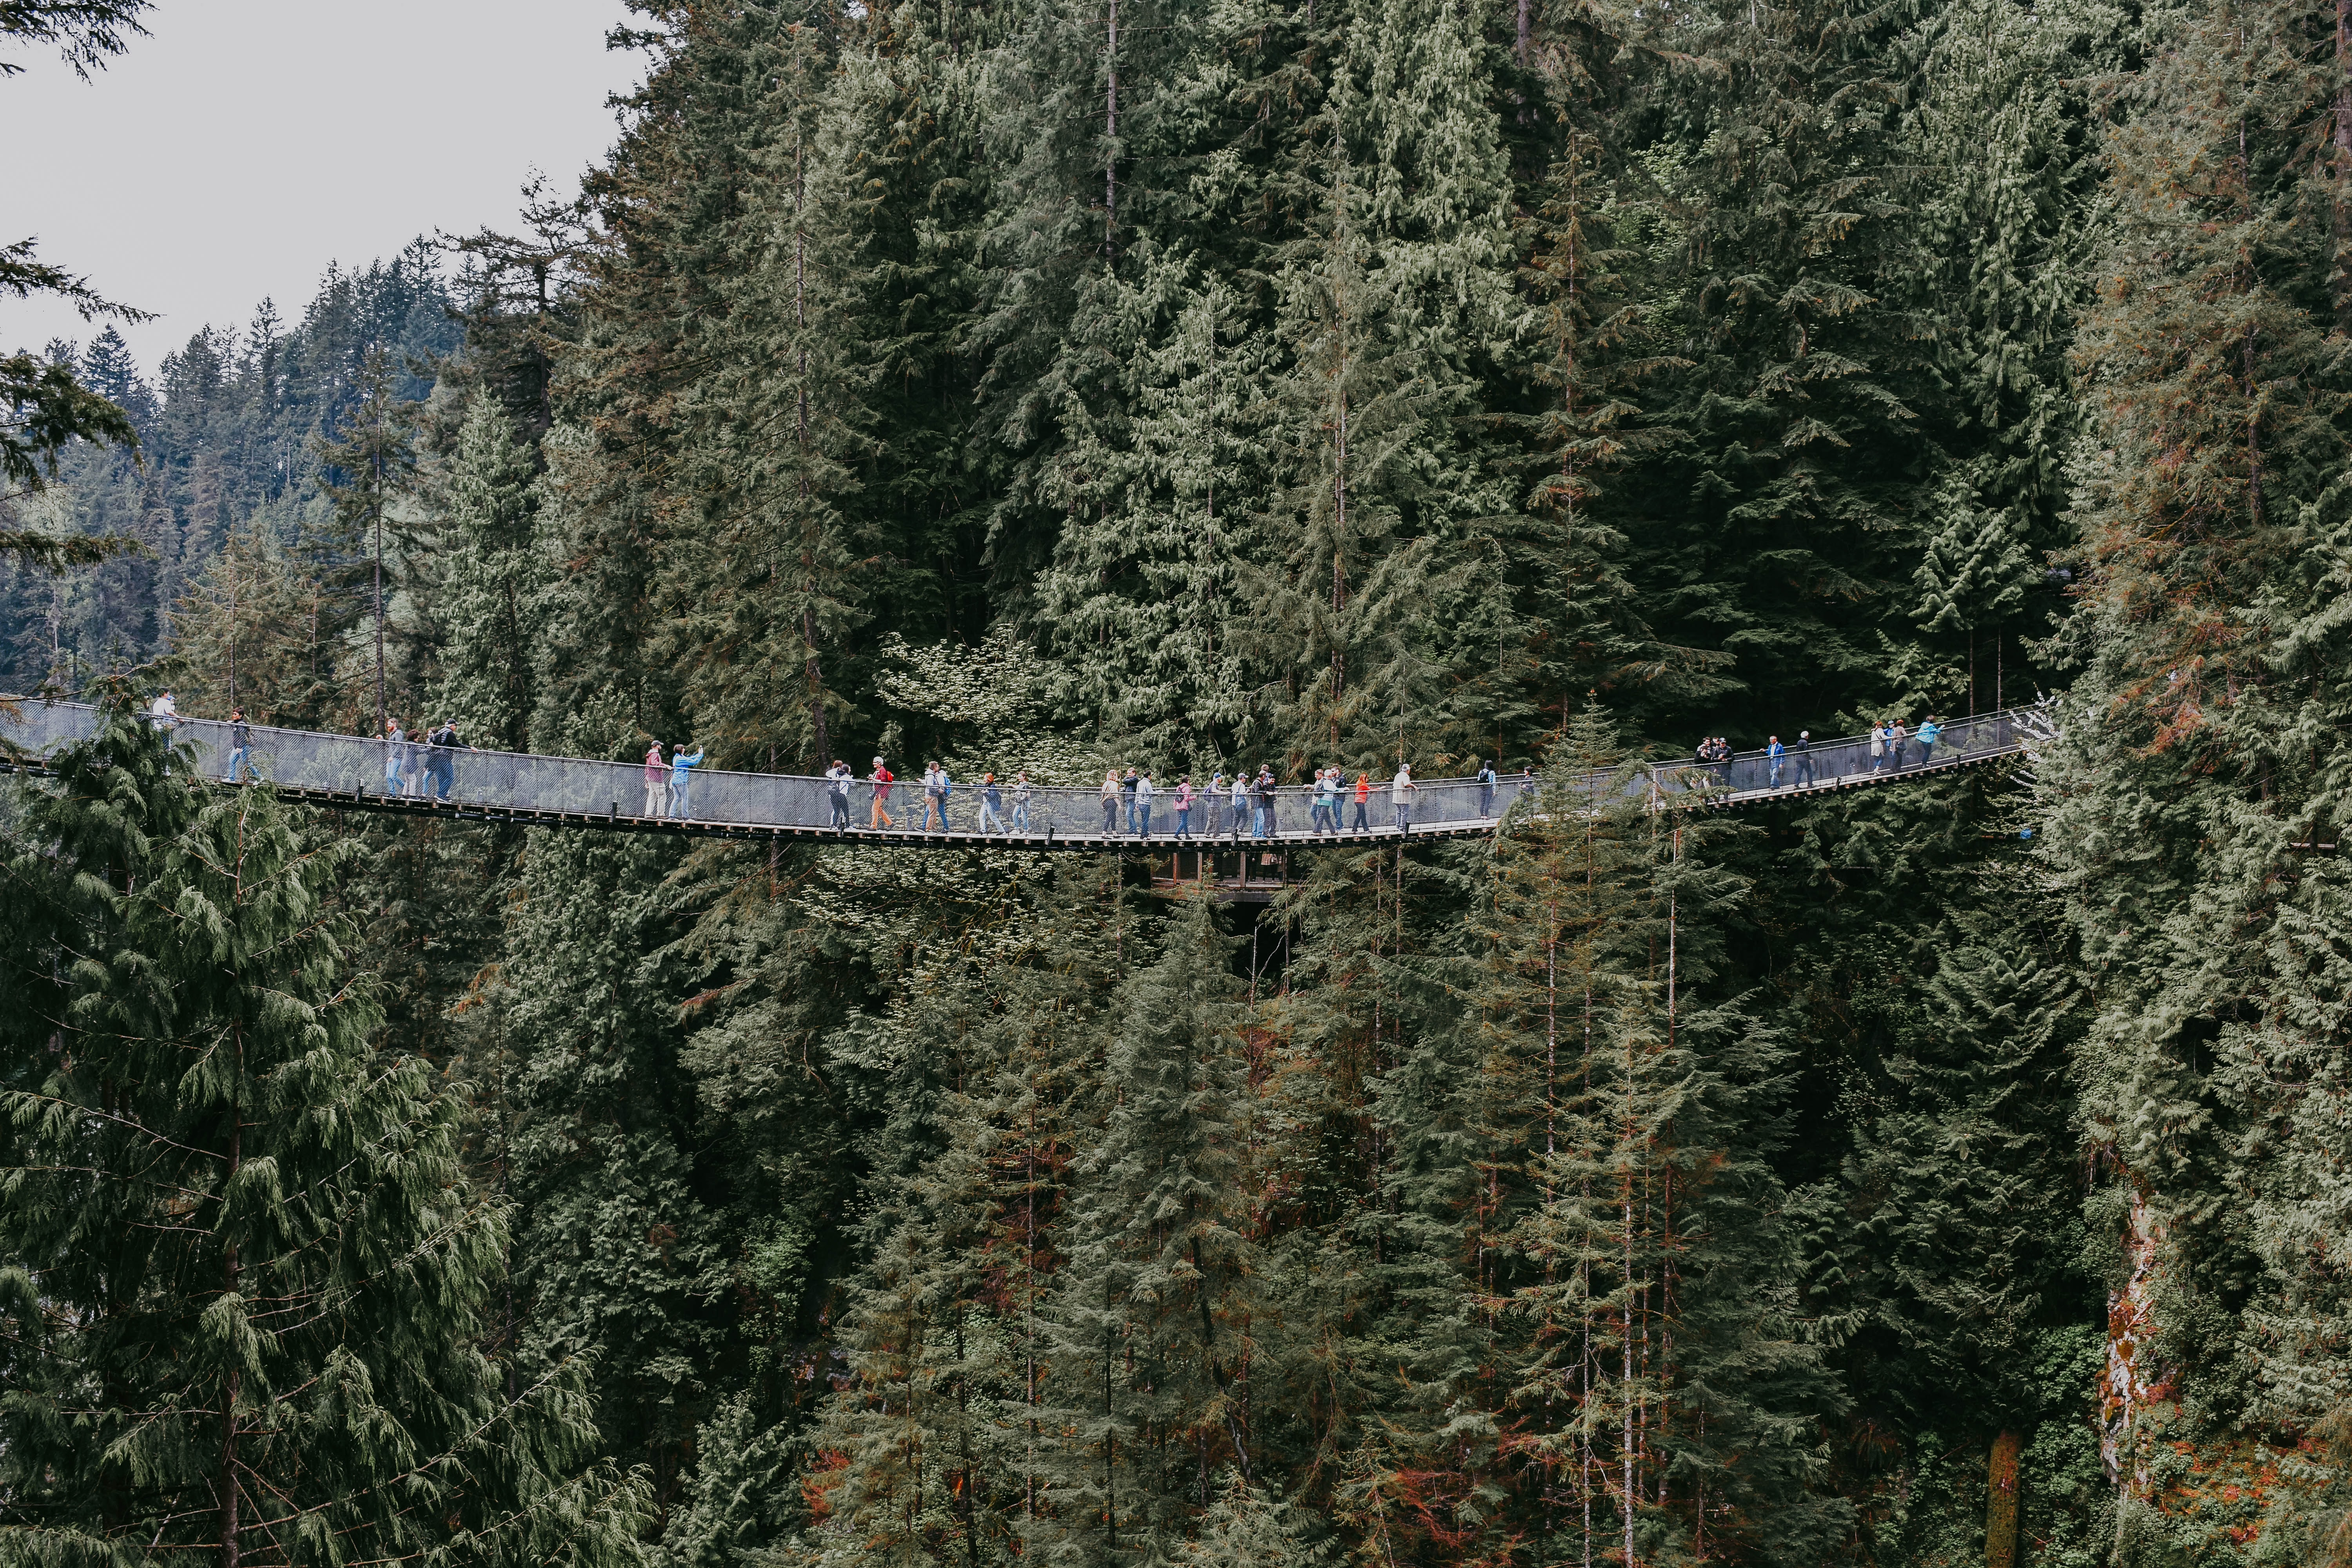 A large group of people on Capilano Suspension Bridge in a forest